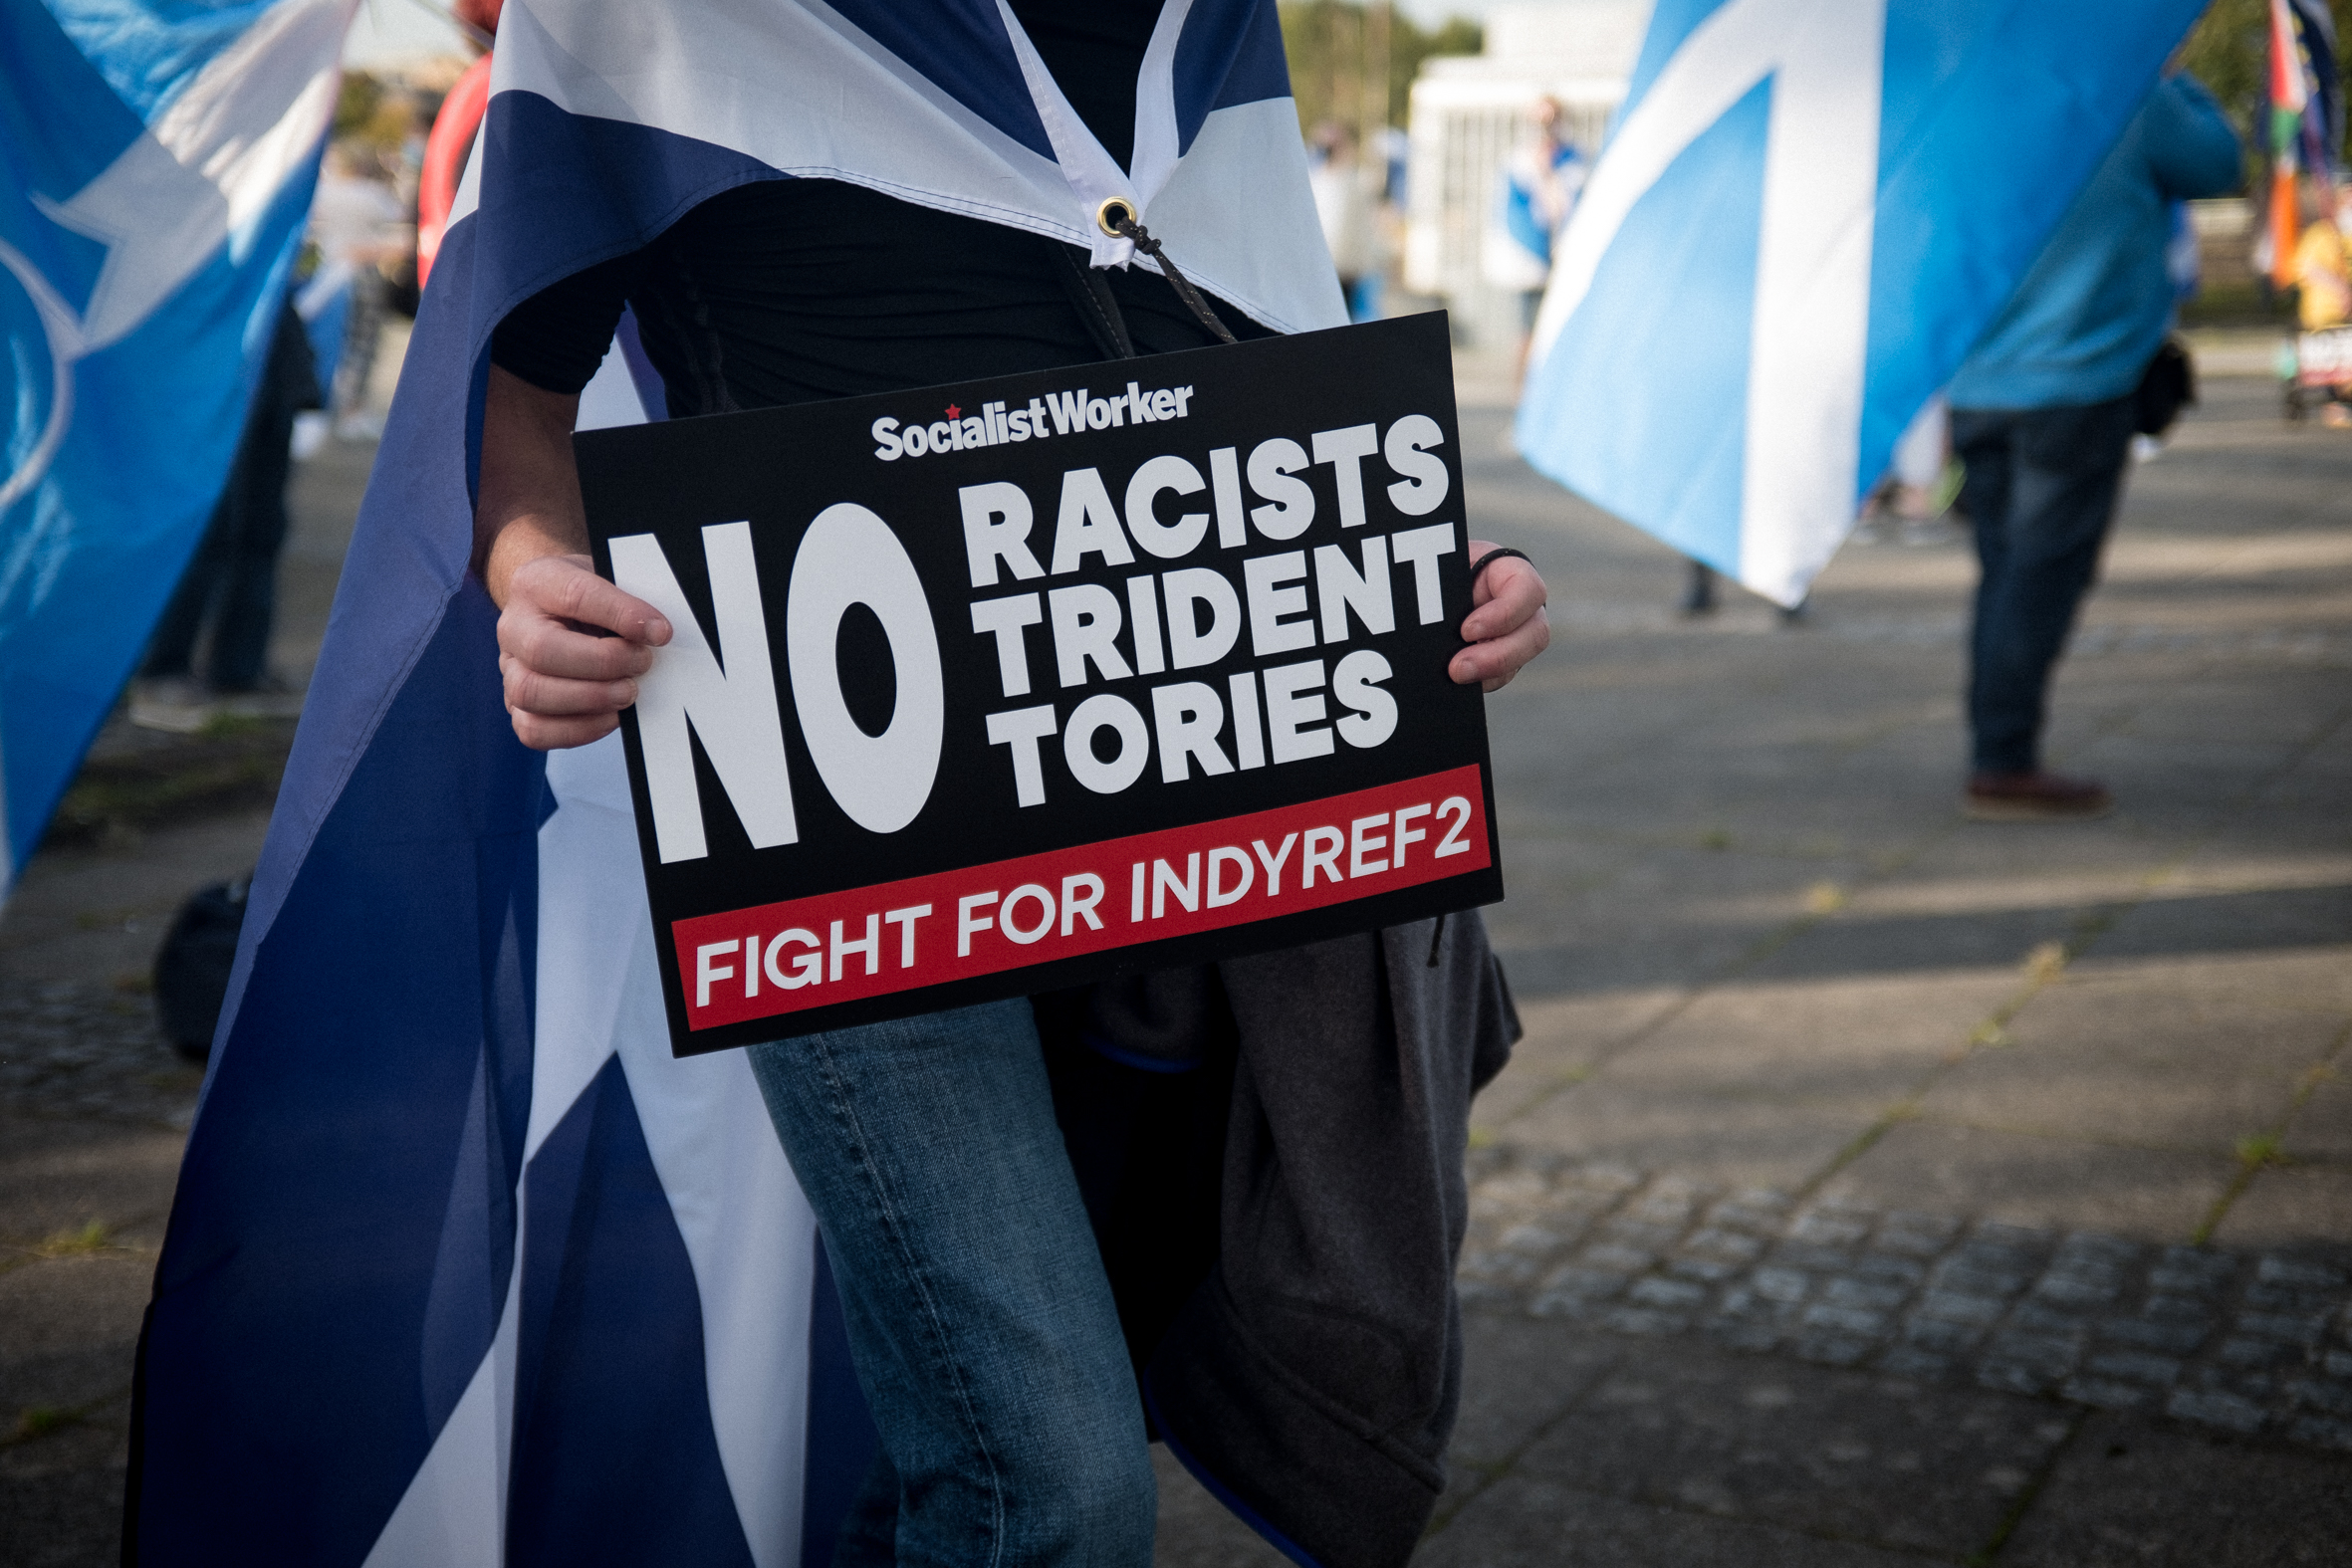 An All Under One Banner protester holds a sign condemning racism, the British nuclear program and the Conservative party.